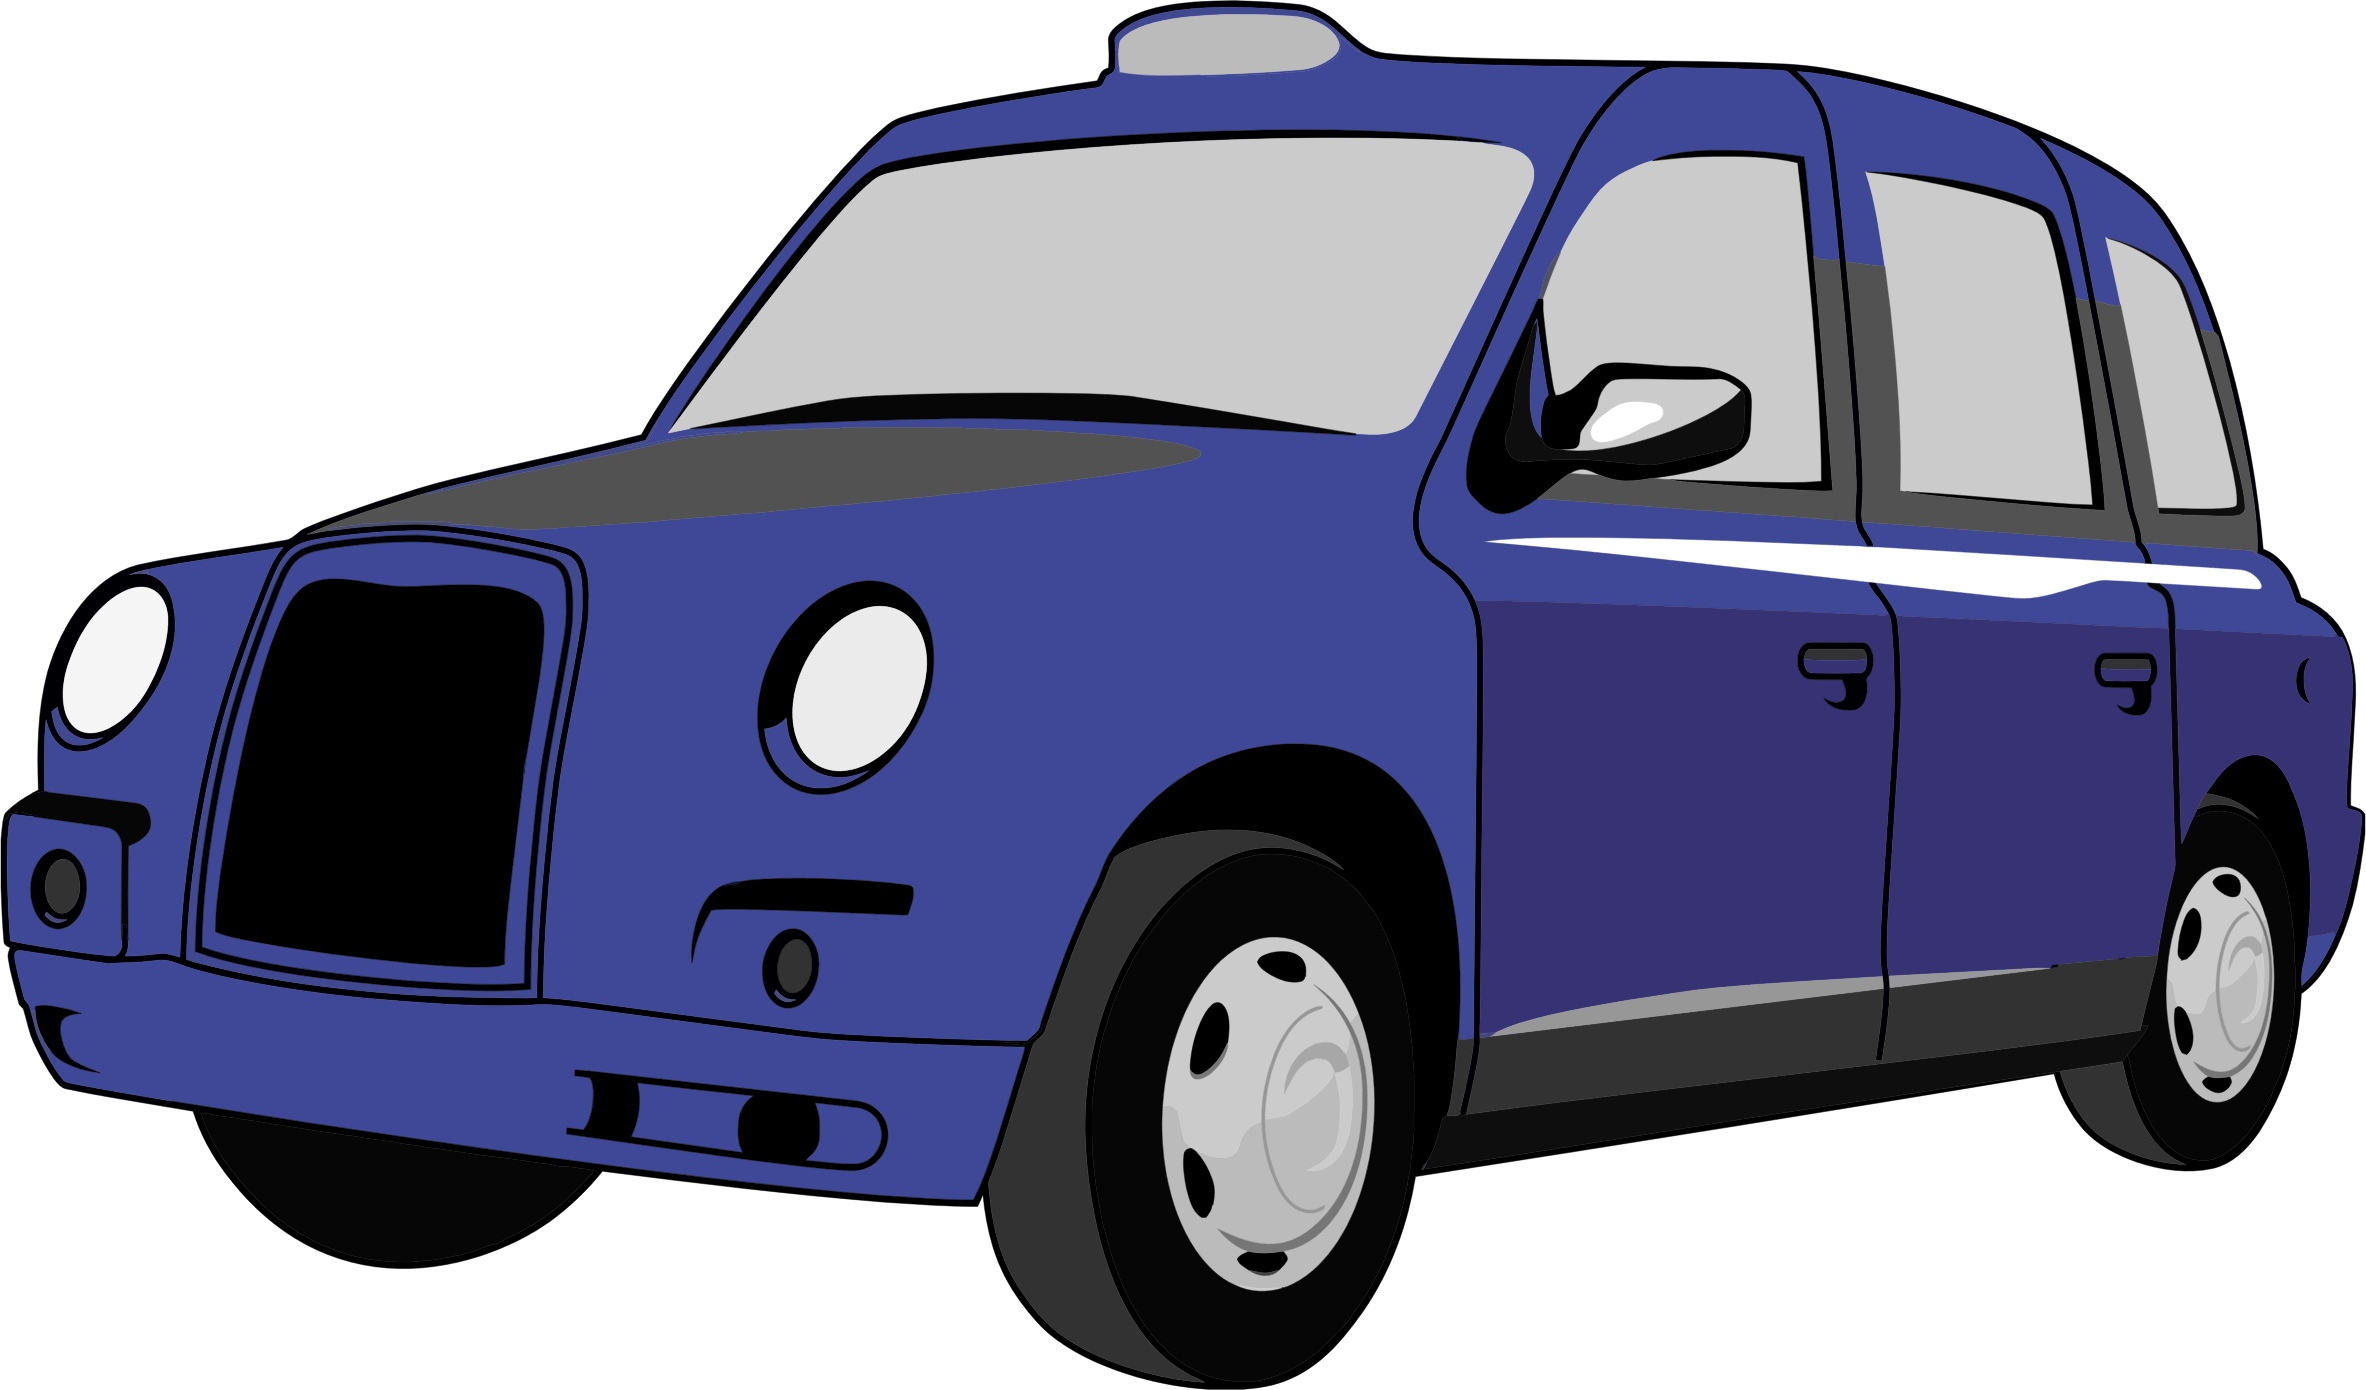 clip art download Taxi drawing london. Png clipart download free.